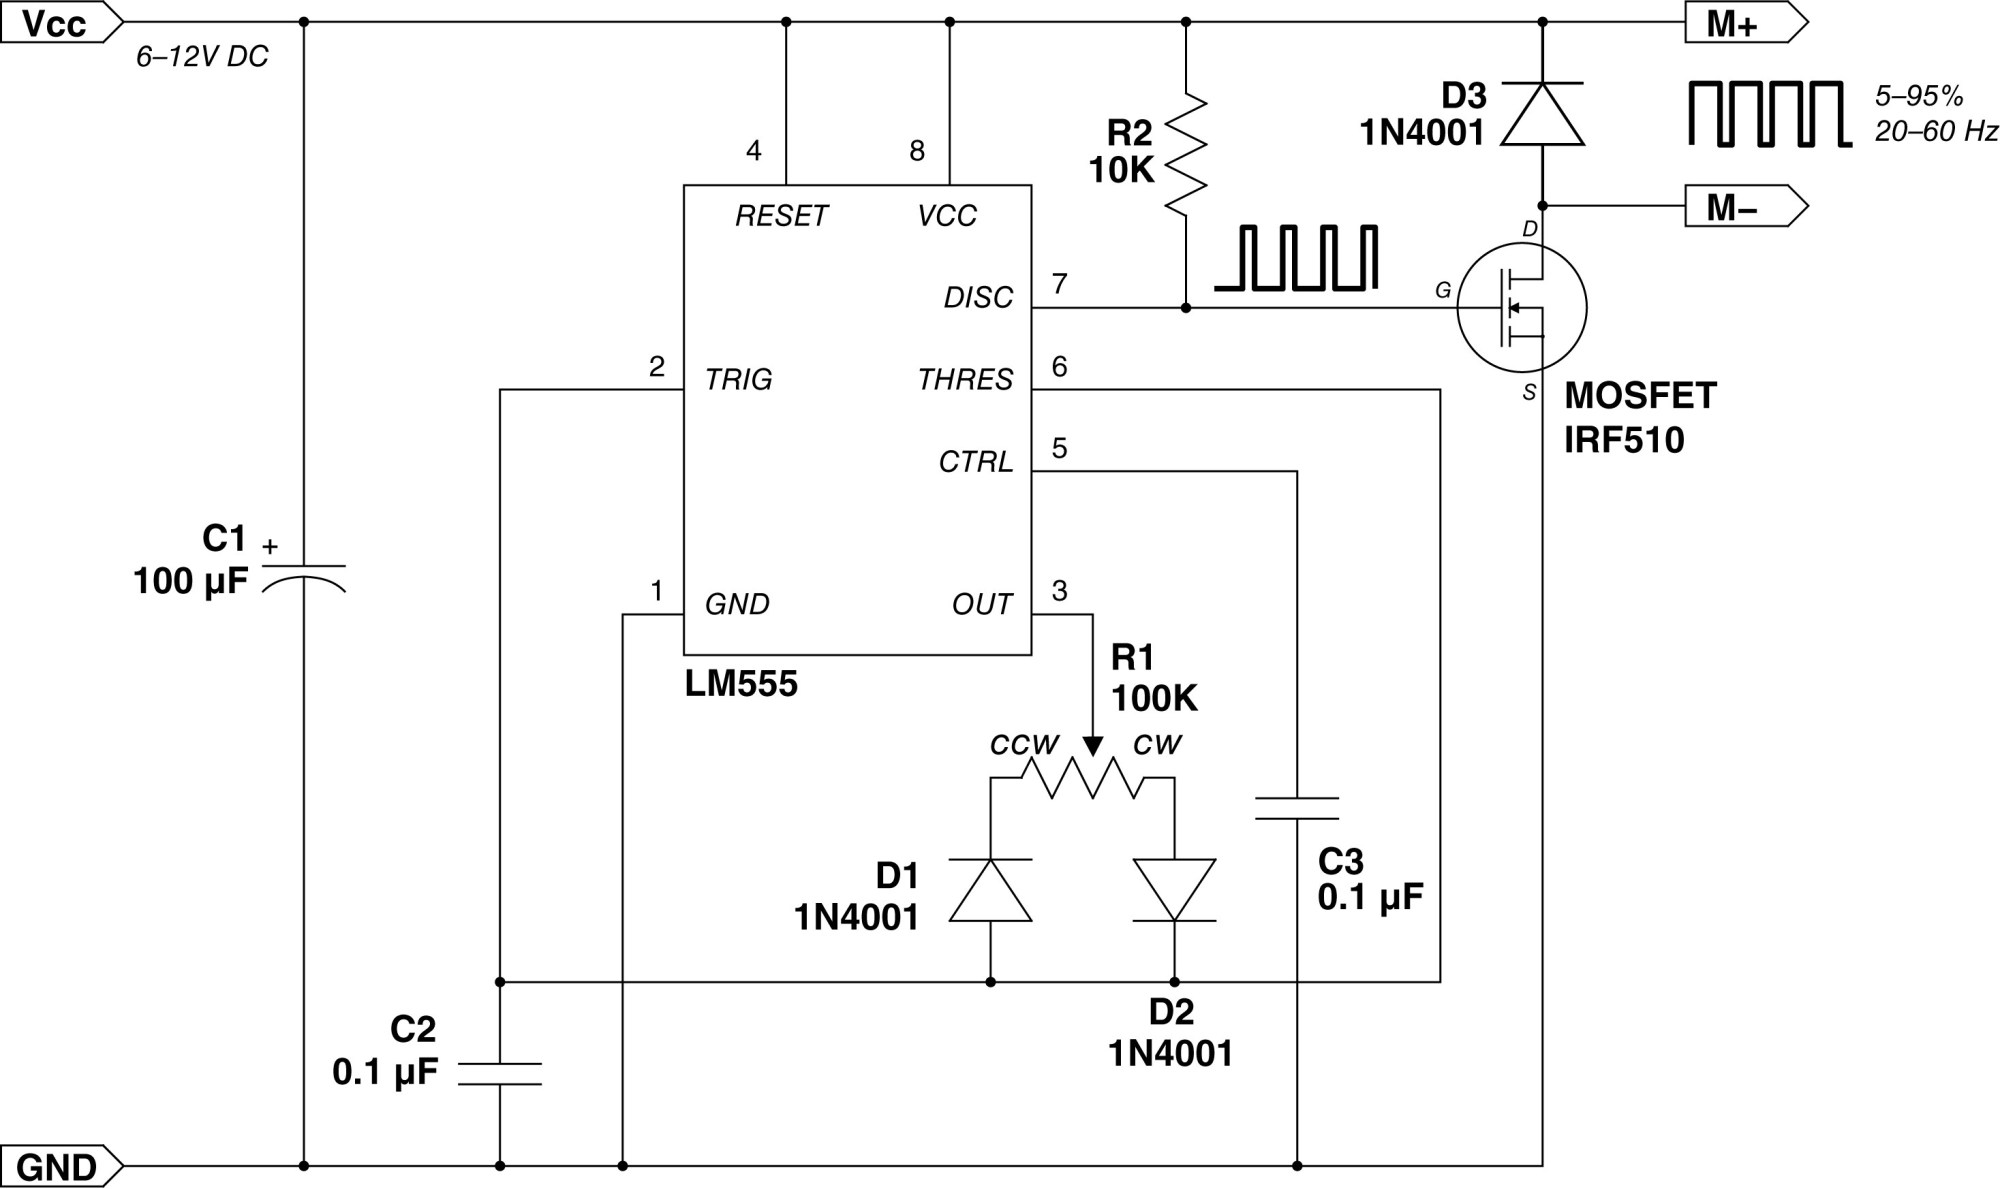 hight resolution of pwm schematic wiring diagram article reviewpwm controller explanation and example circuit diagram schematicneed help with pwm